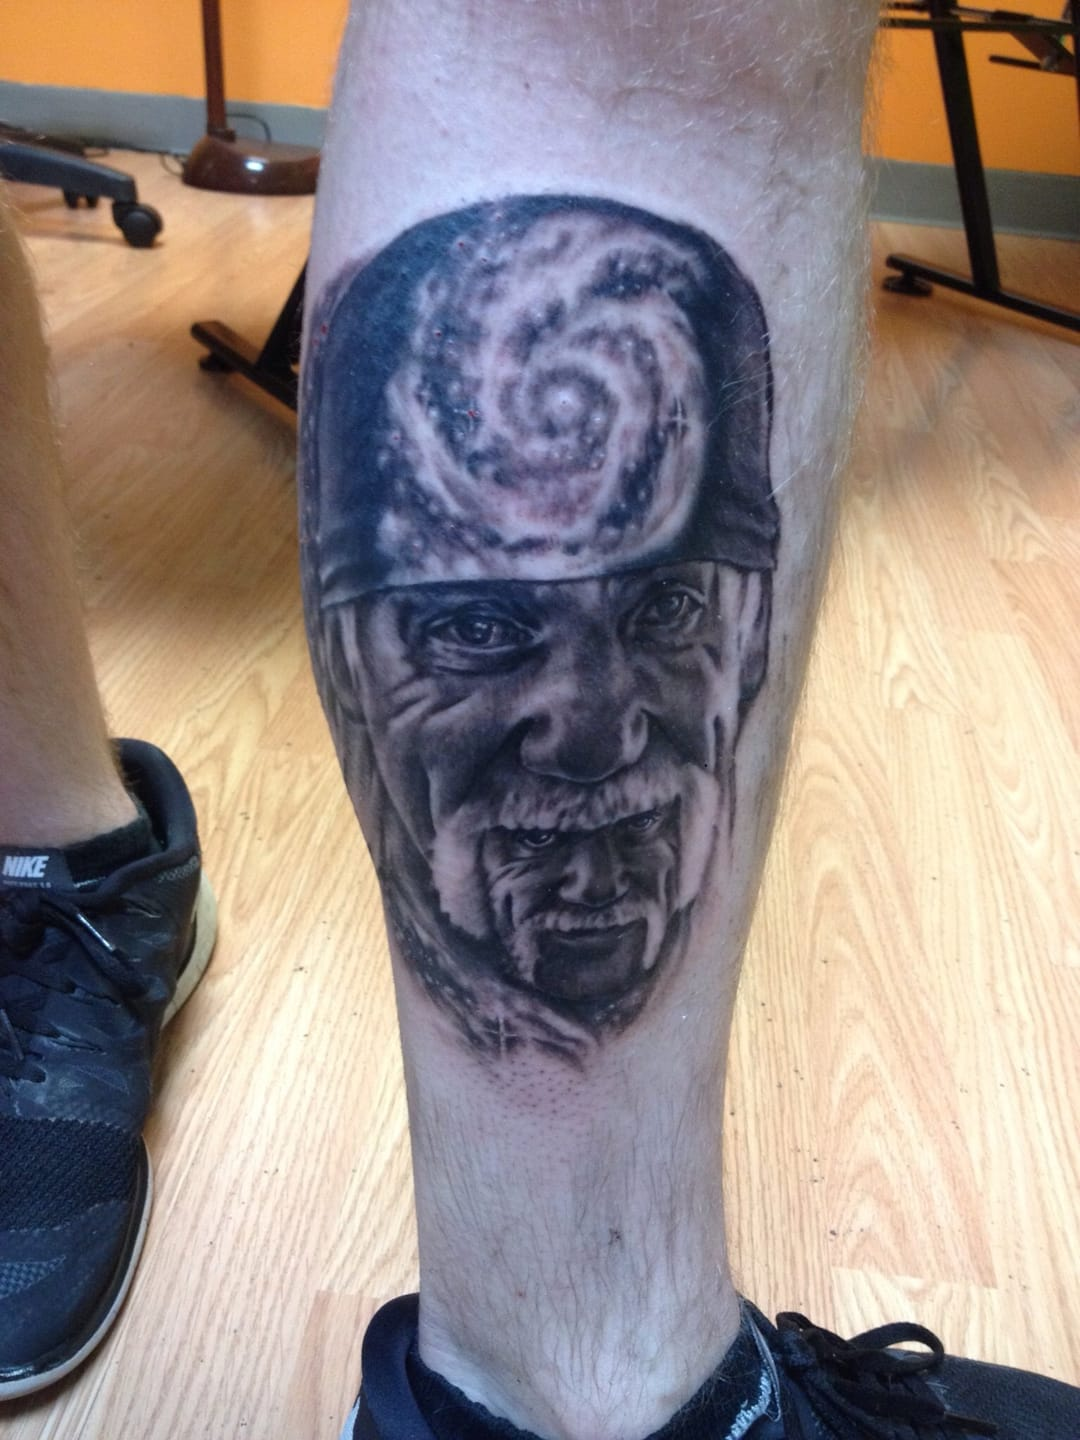 Another funny Hulk infinity portrait, again, amazing tattoo!